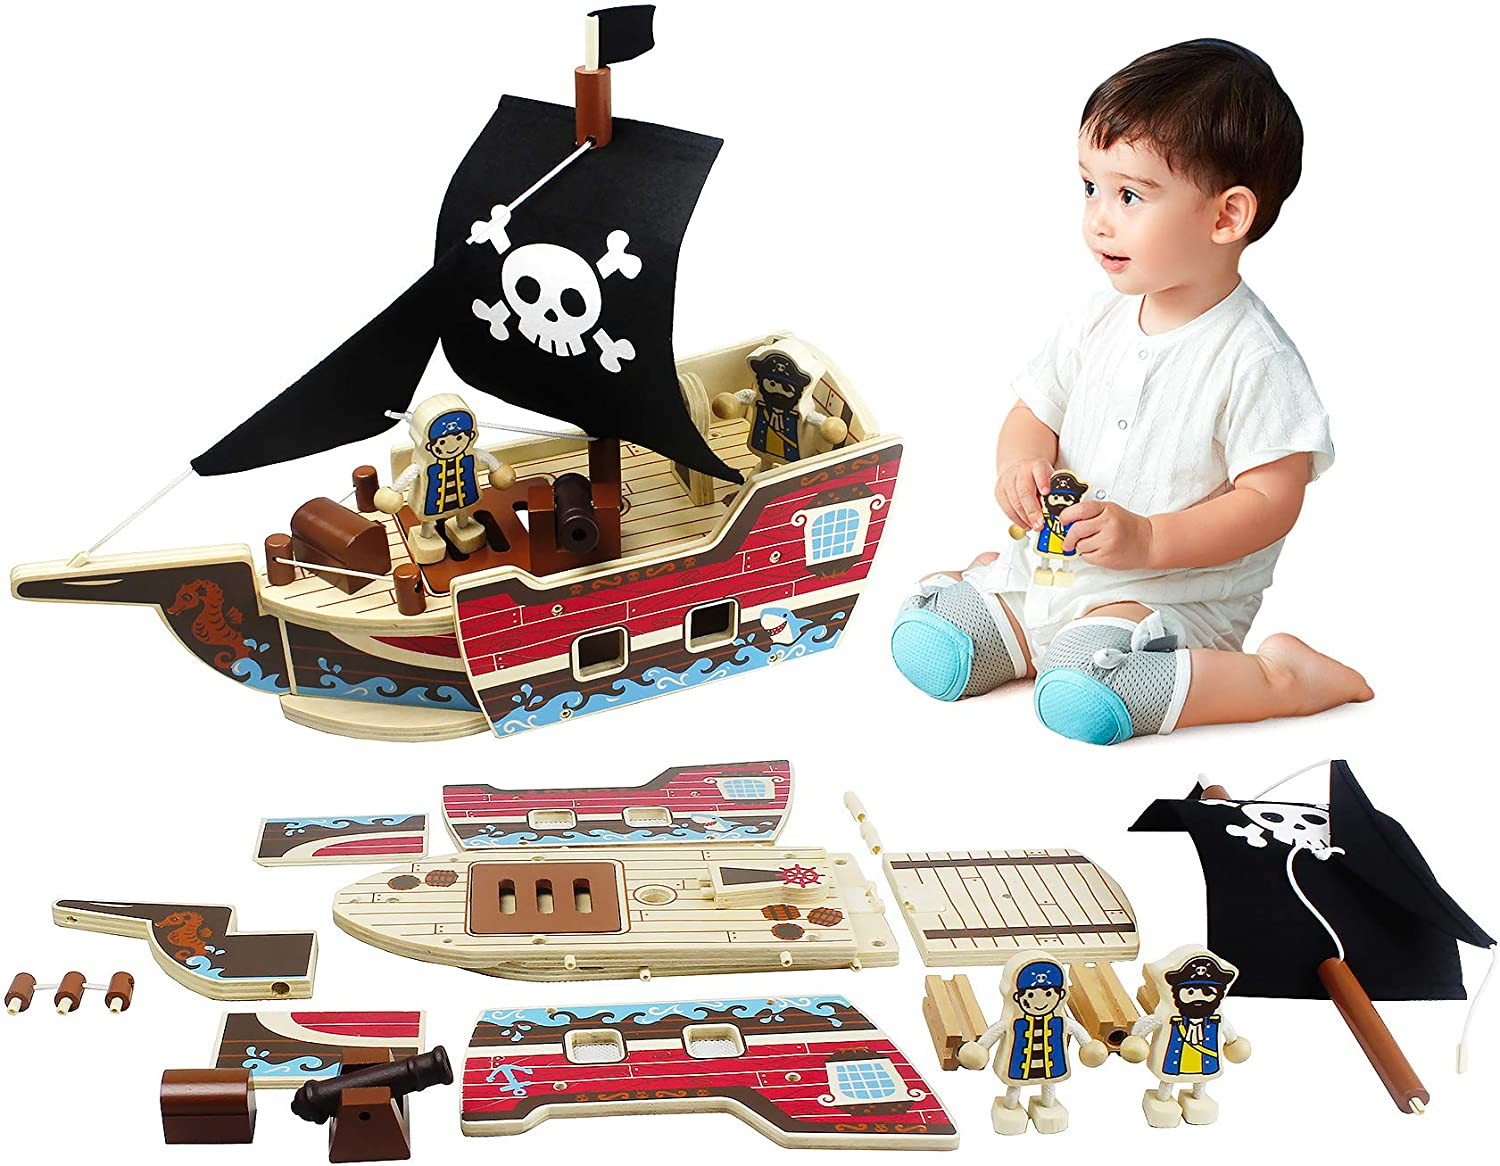 Ealing Wooden Pirate Ship Toy 31pcs Building Playset Model Ships for Kids Creative Building Toys Wood Craft Kits for Children Who Like Adventures Birthday for Kids Ages 3 Years and Up